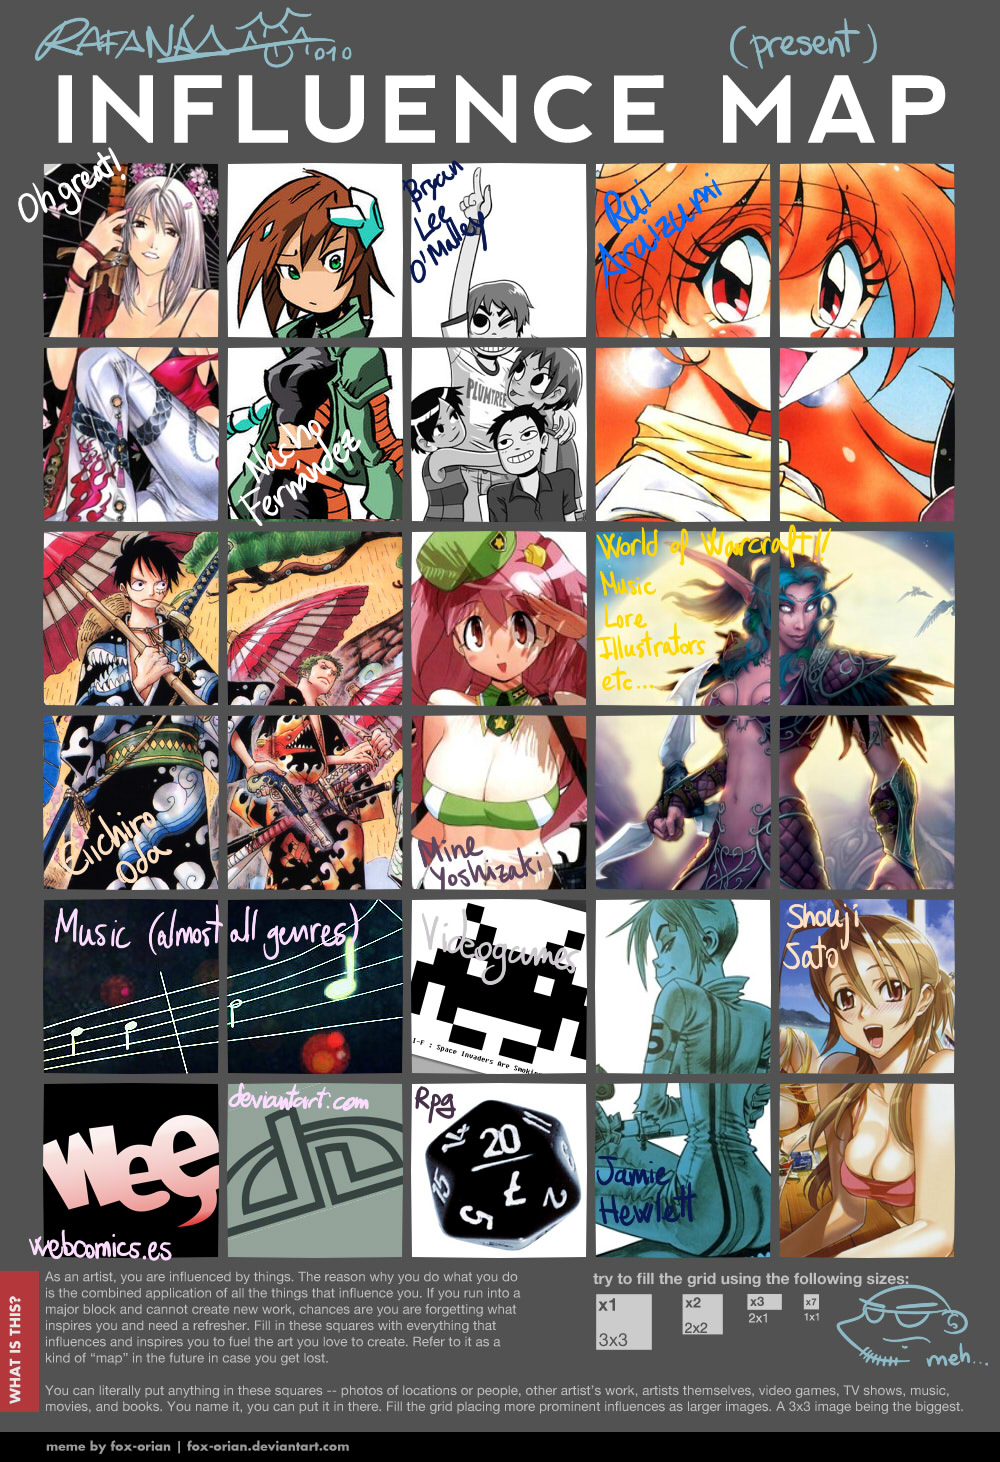 Influence Map Meme by Rafanas